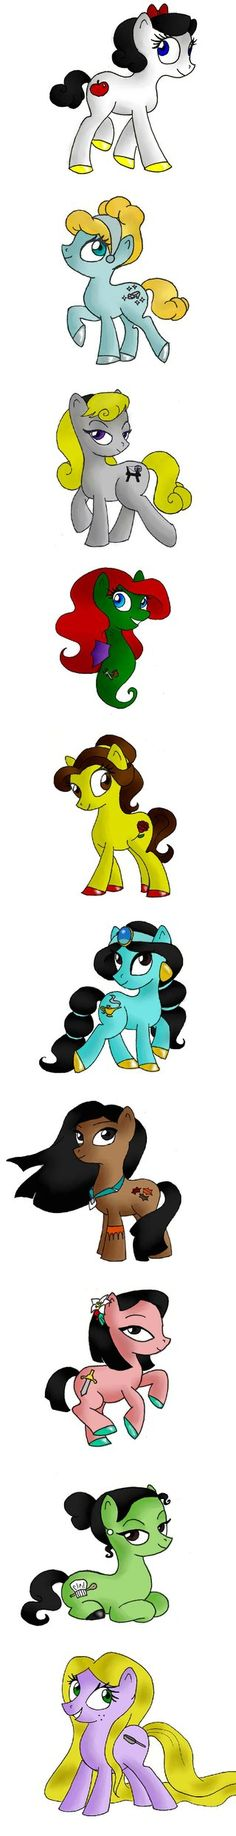 My little ponies- Disney princess style. Love! I just feel like Belle's should be a book instead of a rose, and Rapunzel's should be a lantern.